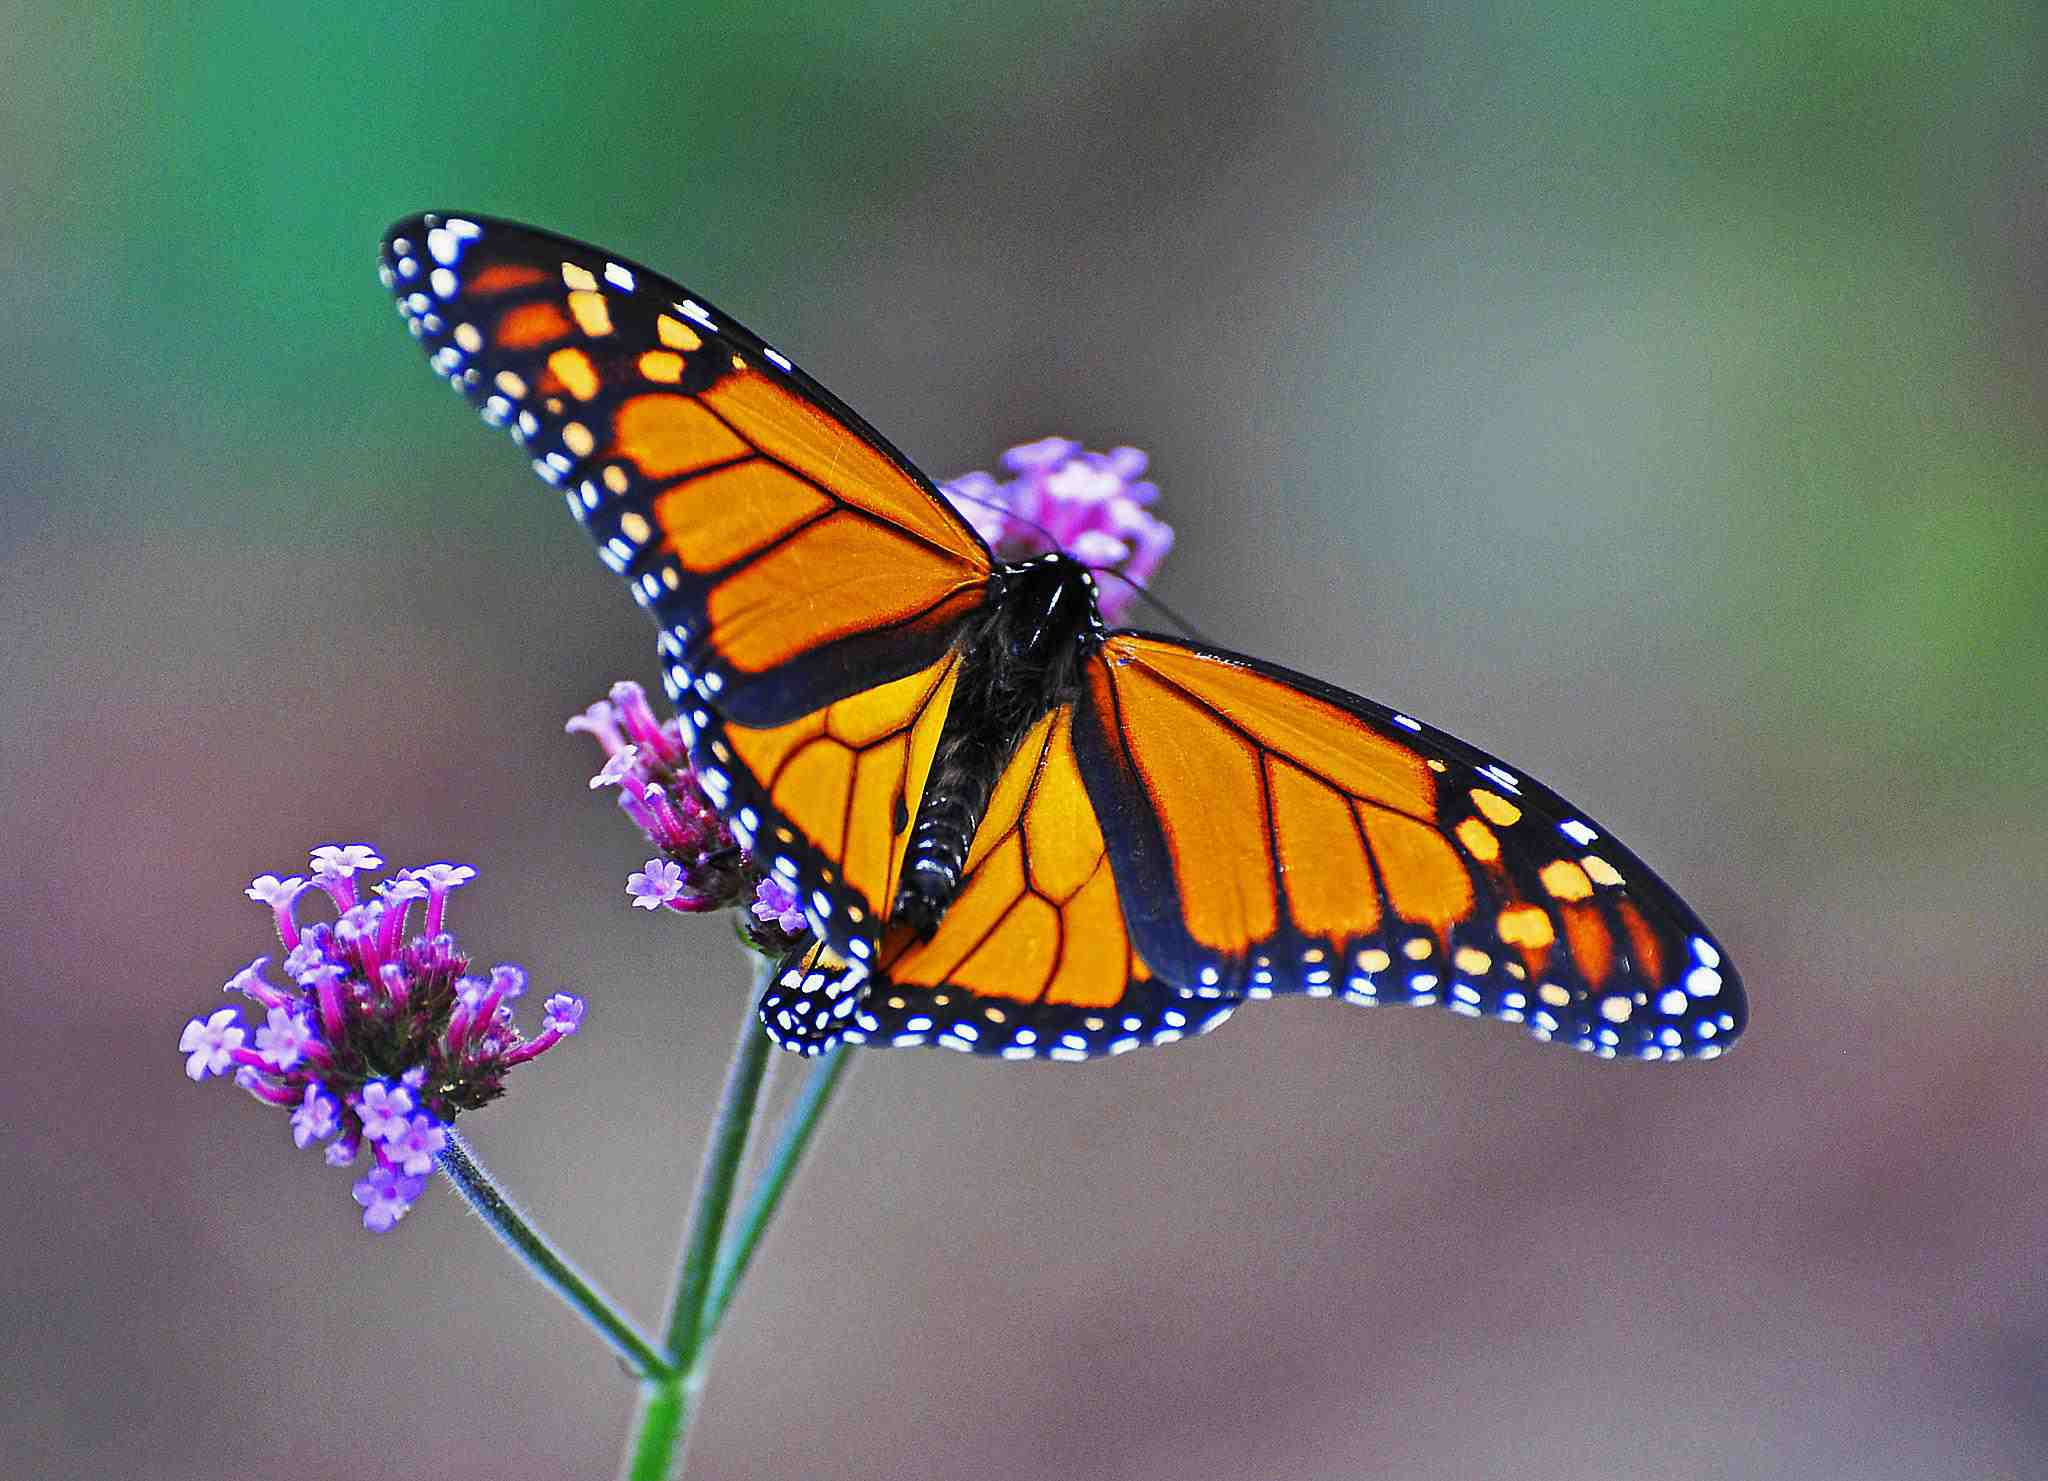 Monarchs stop for nectar along the migration path to gain body fat for the long winter.